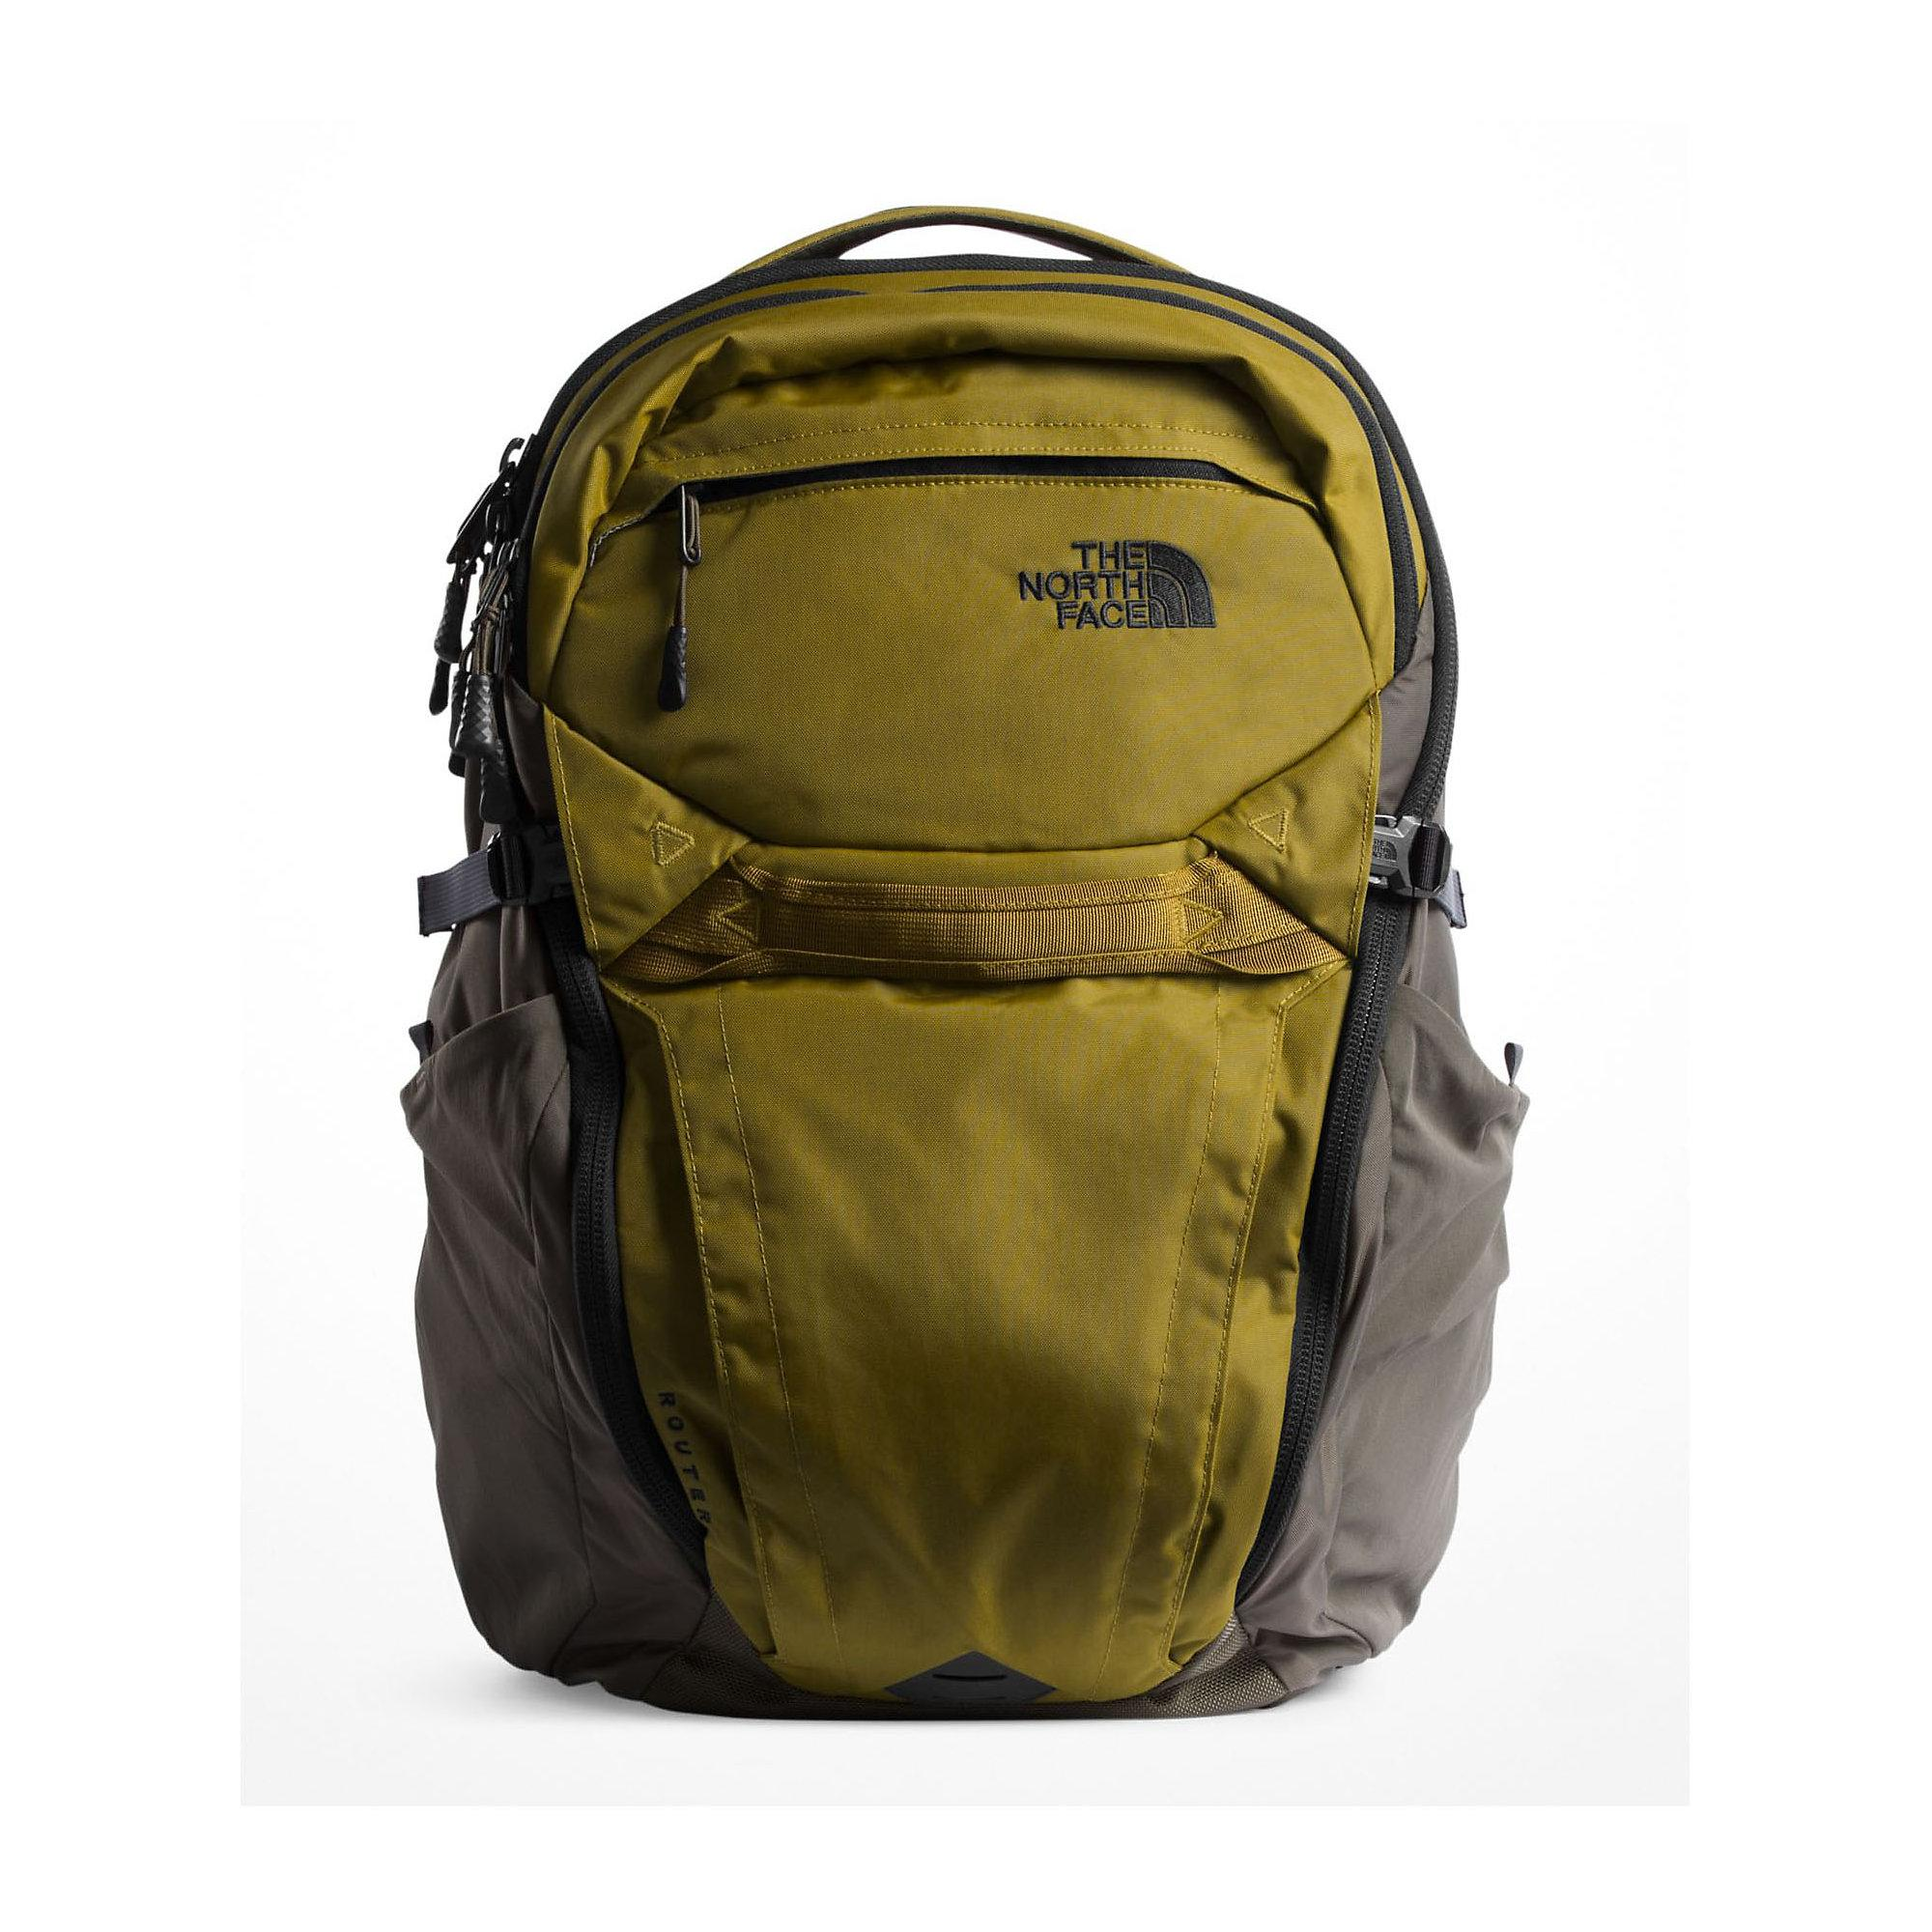 29568ce4a The North Face Router Backpack in Green - Lyst